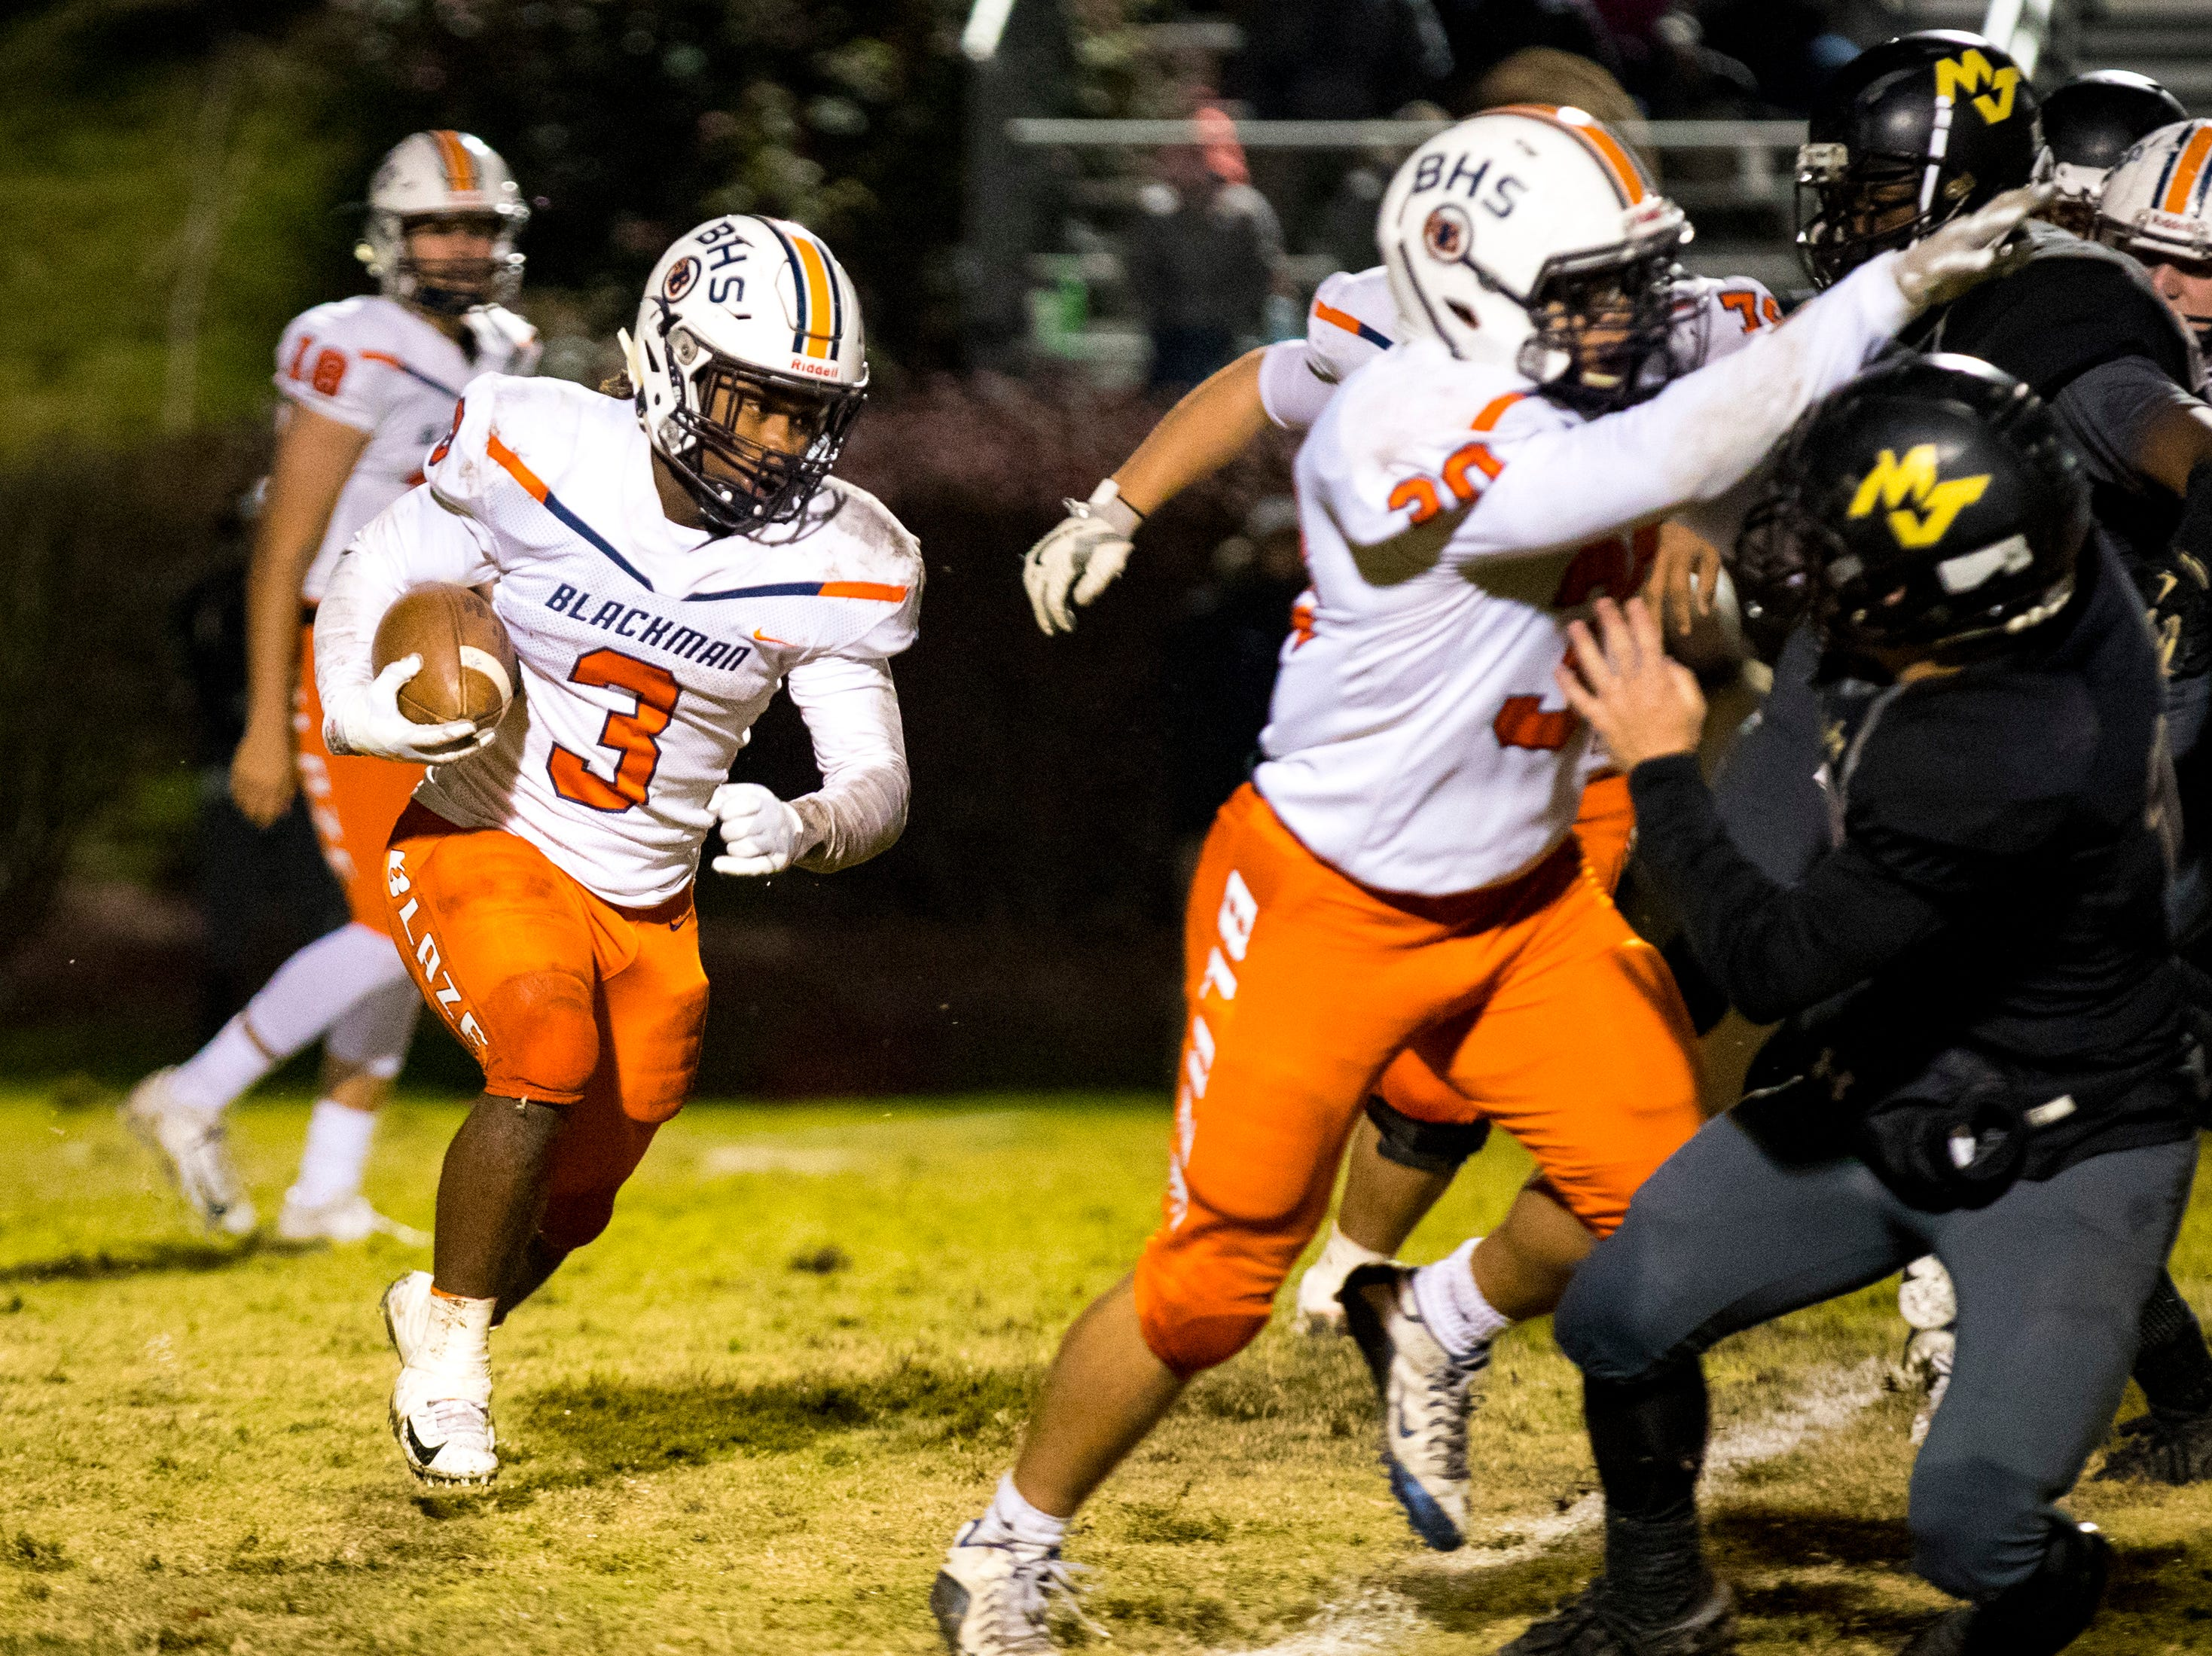 Blackman's Ta'Micus Napier (3) carries the ball during Mt. Juliet's game against Blackman at Mt. Juliet High School in Mt. Juliet on Friday, Nov. 9, 2018.